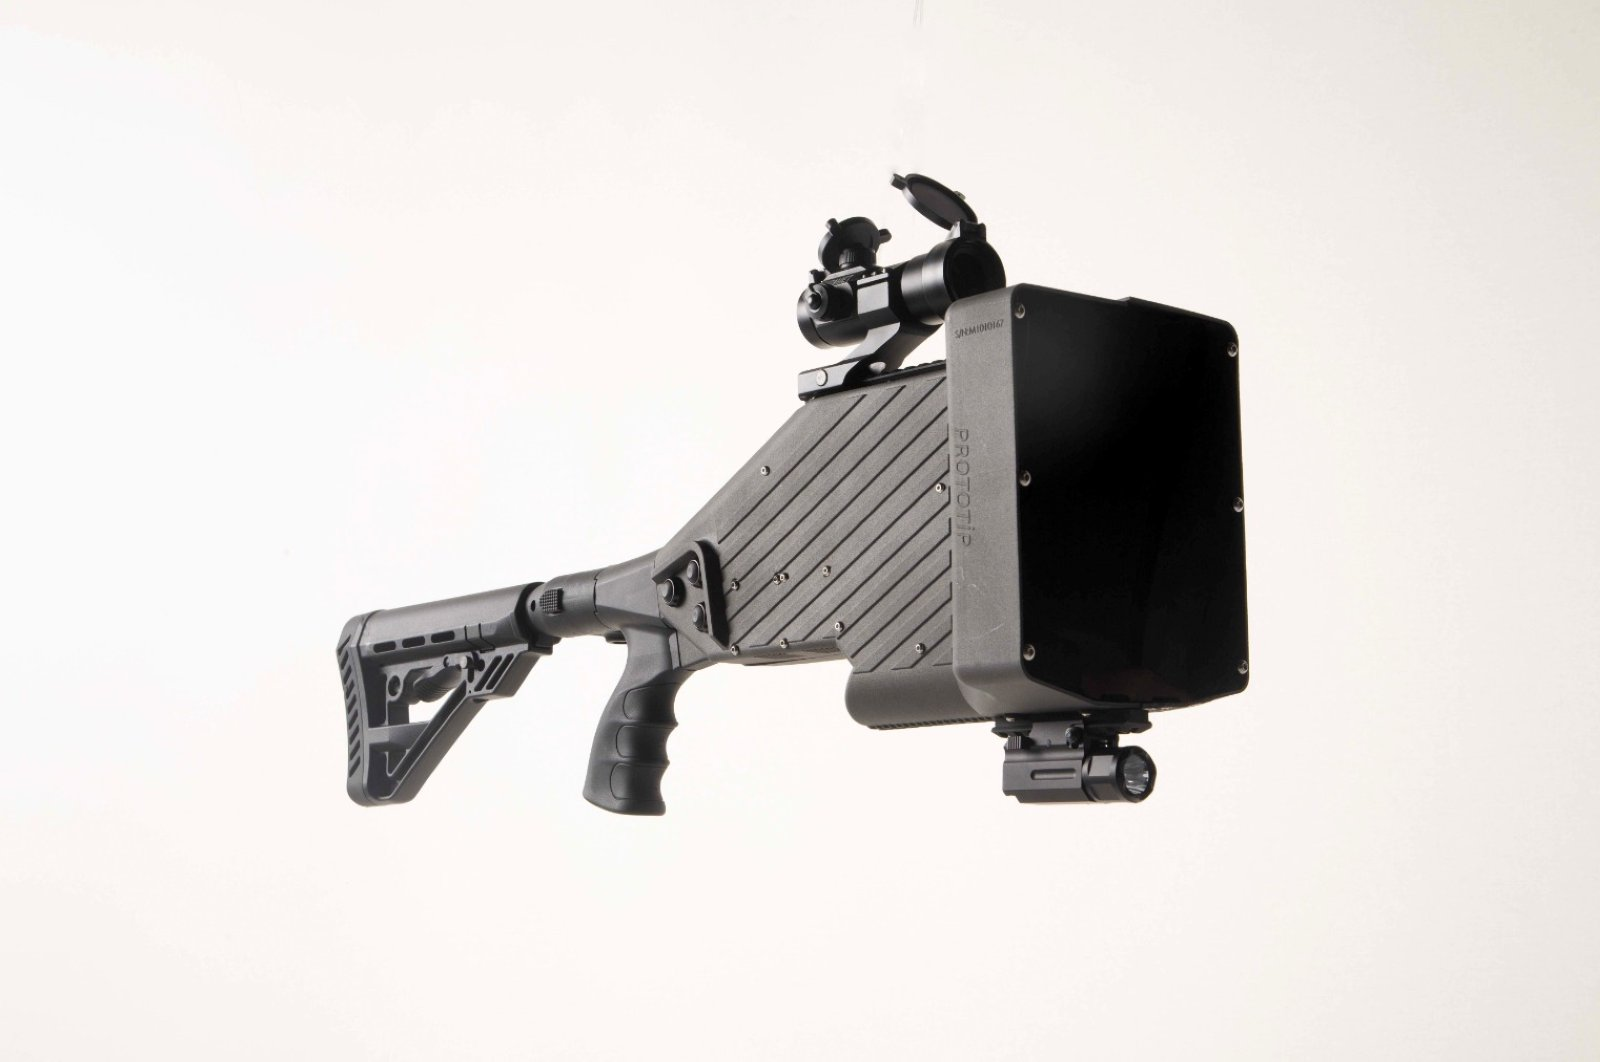 The anti-drone gun has a weight of 2.5 kilograms and is capable of combating rogue drones within 3 kilometers its range. (AA Photo)